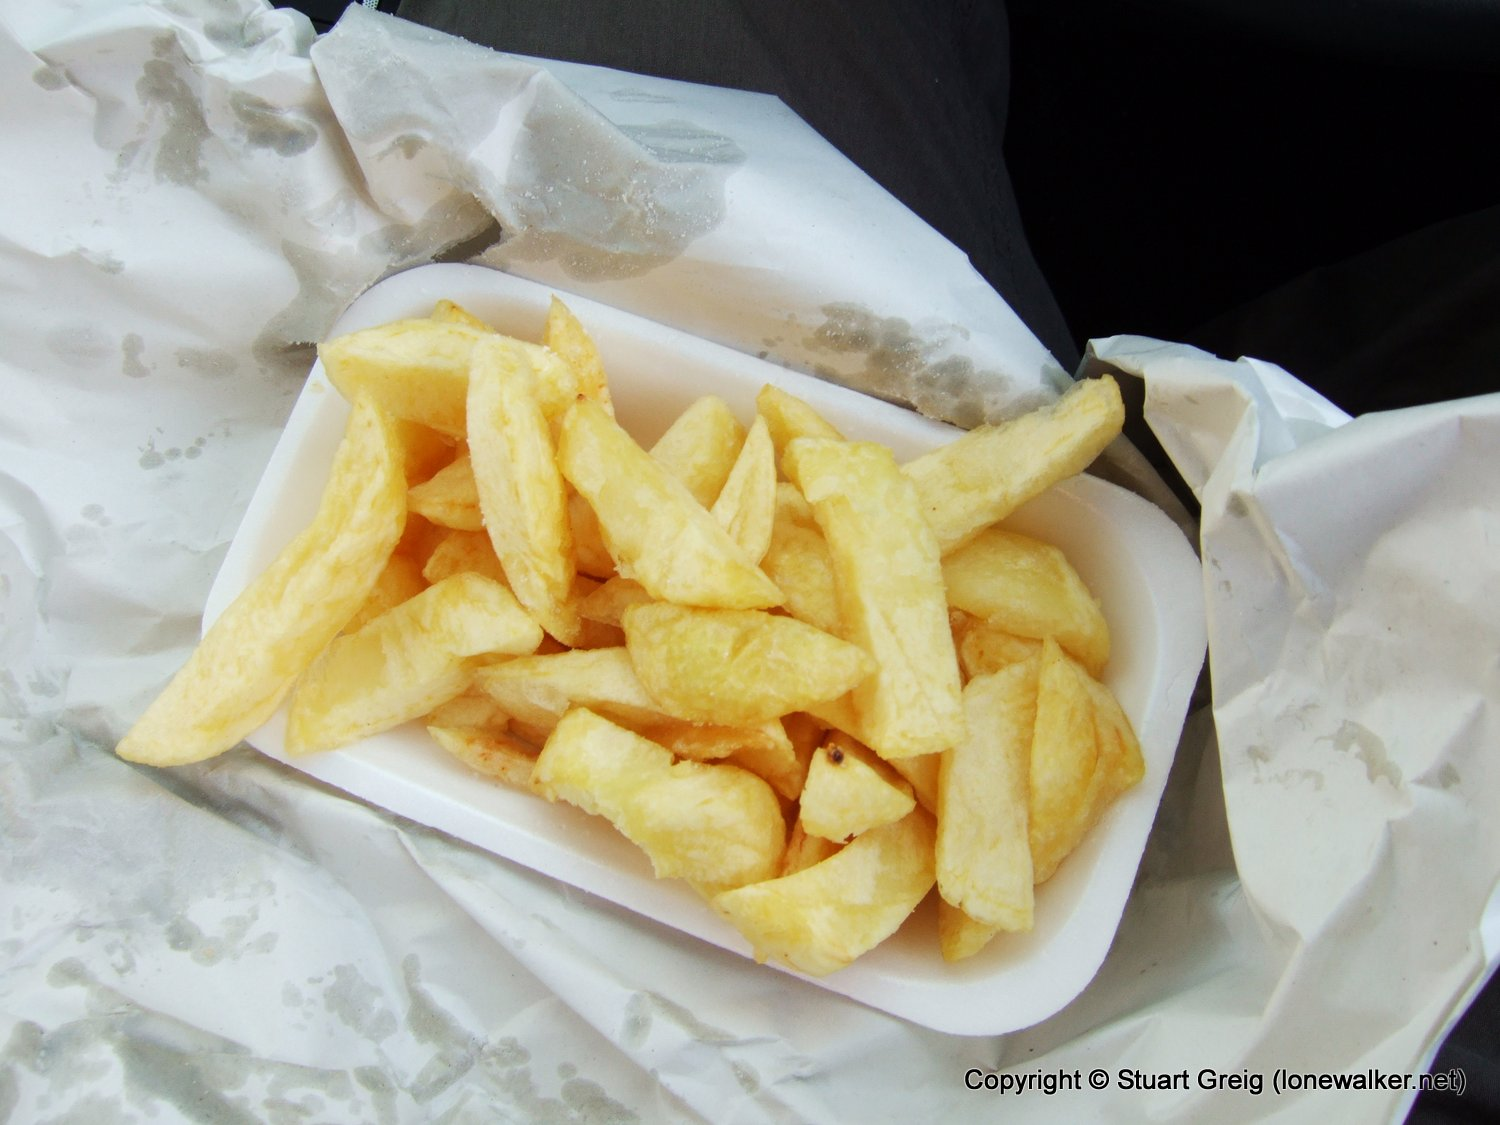 Ridiculously small portion of very expensive chips!!